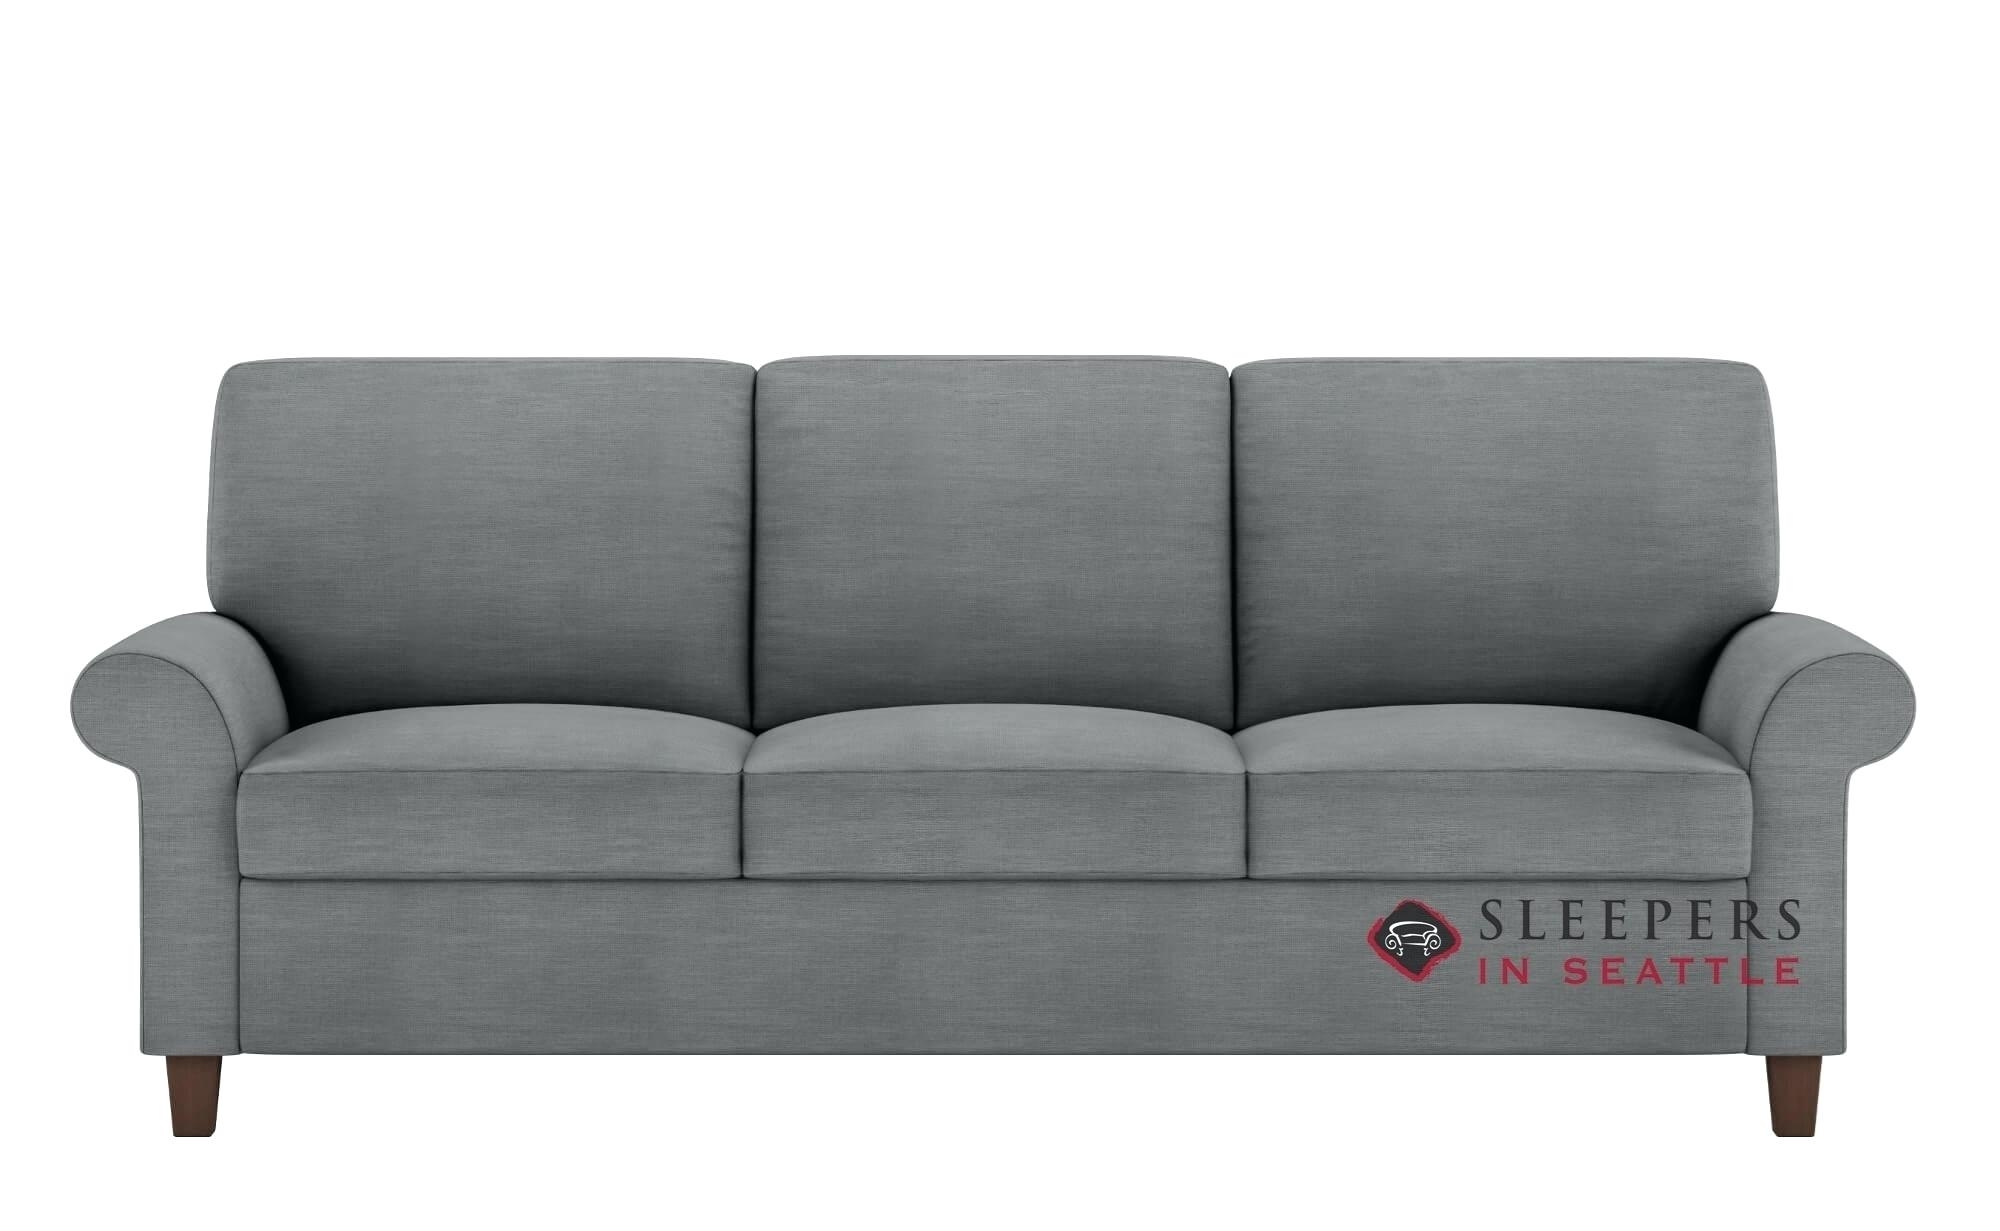 Small Corner Sectional Couch Nz Sofa Ikea For Bedroom – Skipset Inside Nz Sectional Sofas (View 5 of 10)